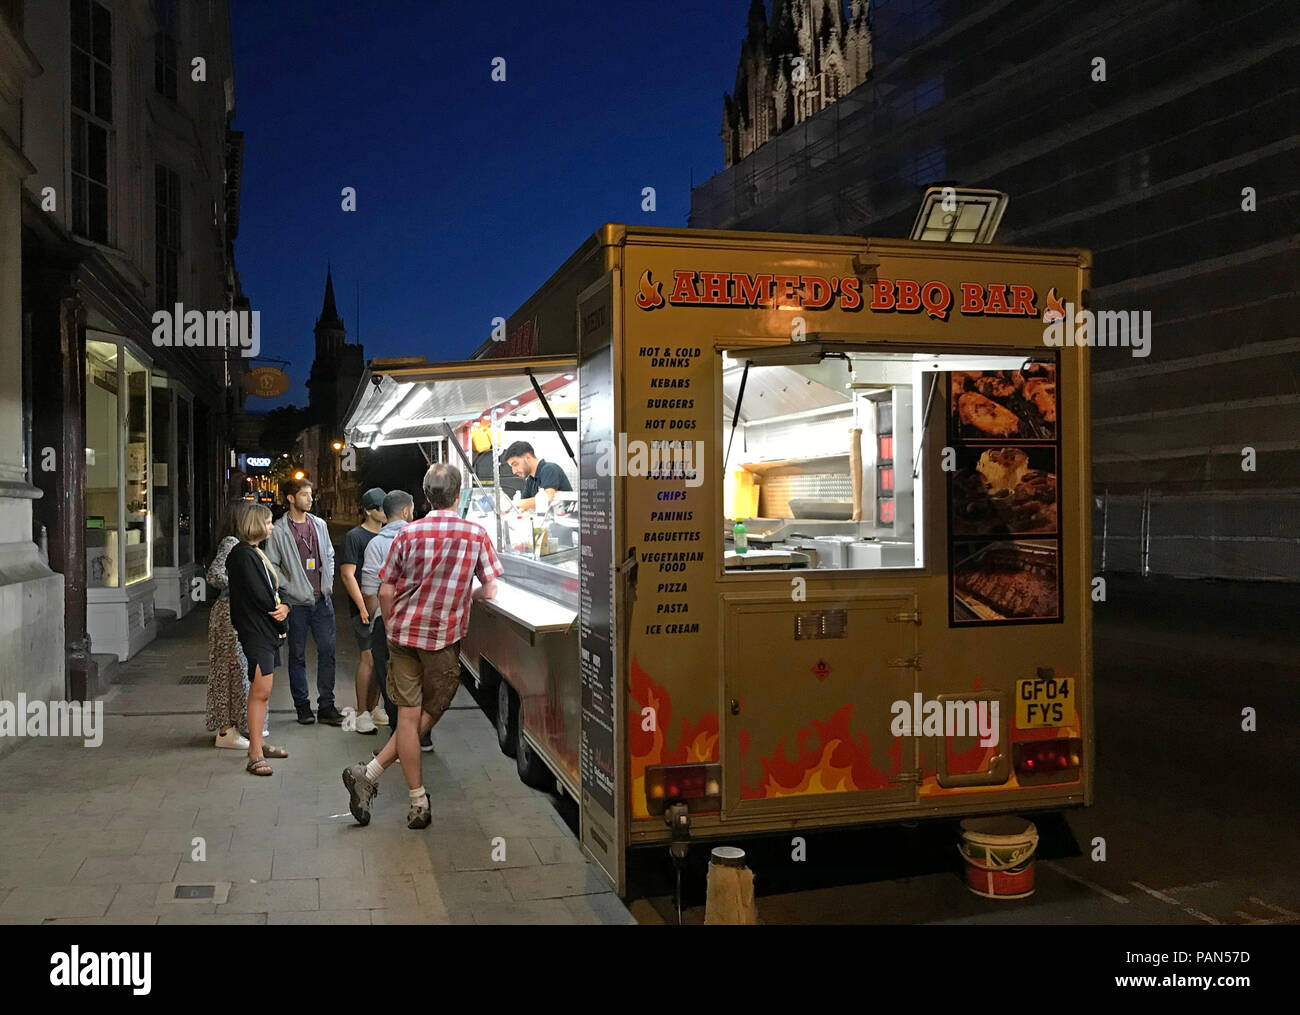 Ahmeds BBQ van, Oxford, Oxfordshire, South East England, Uk - Stock Image